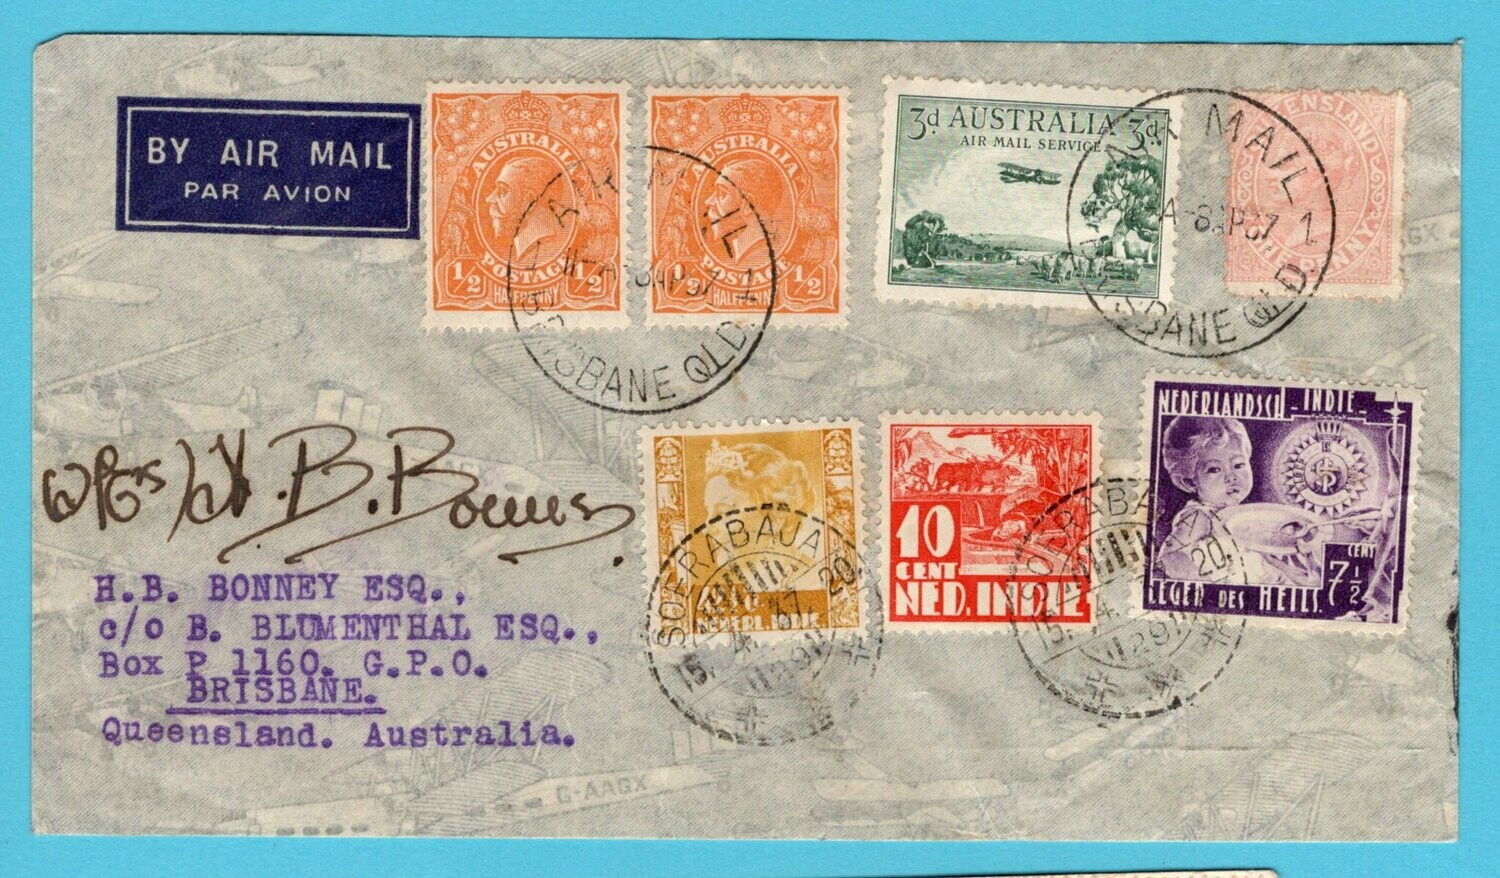 NETHERLANDS EAST INDIES air cover 1937 flown by Lores Bonney